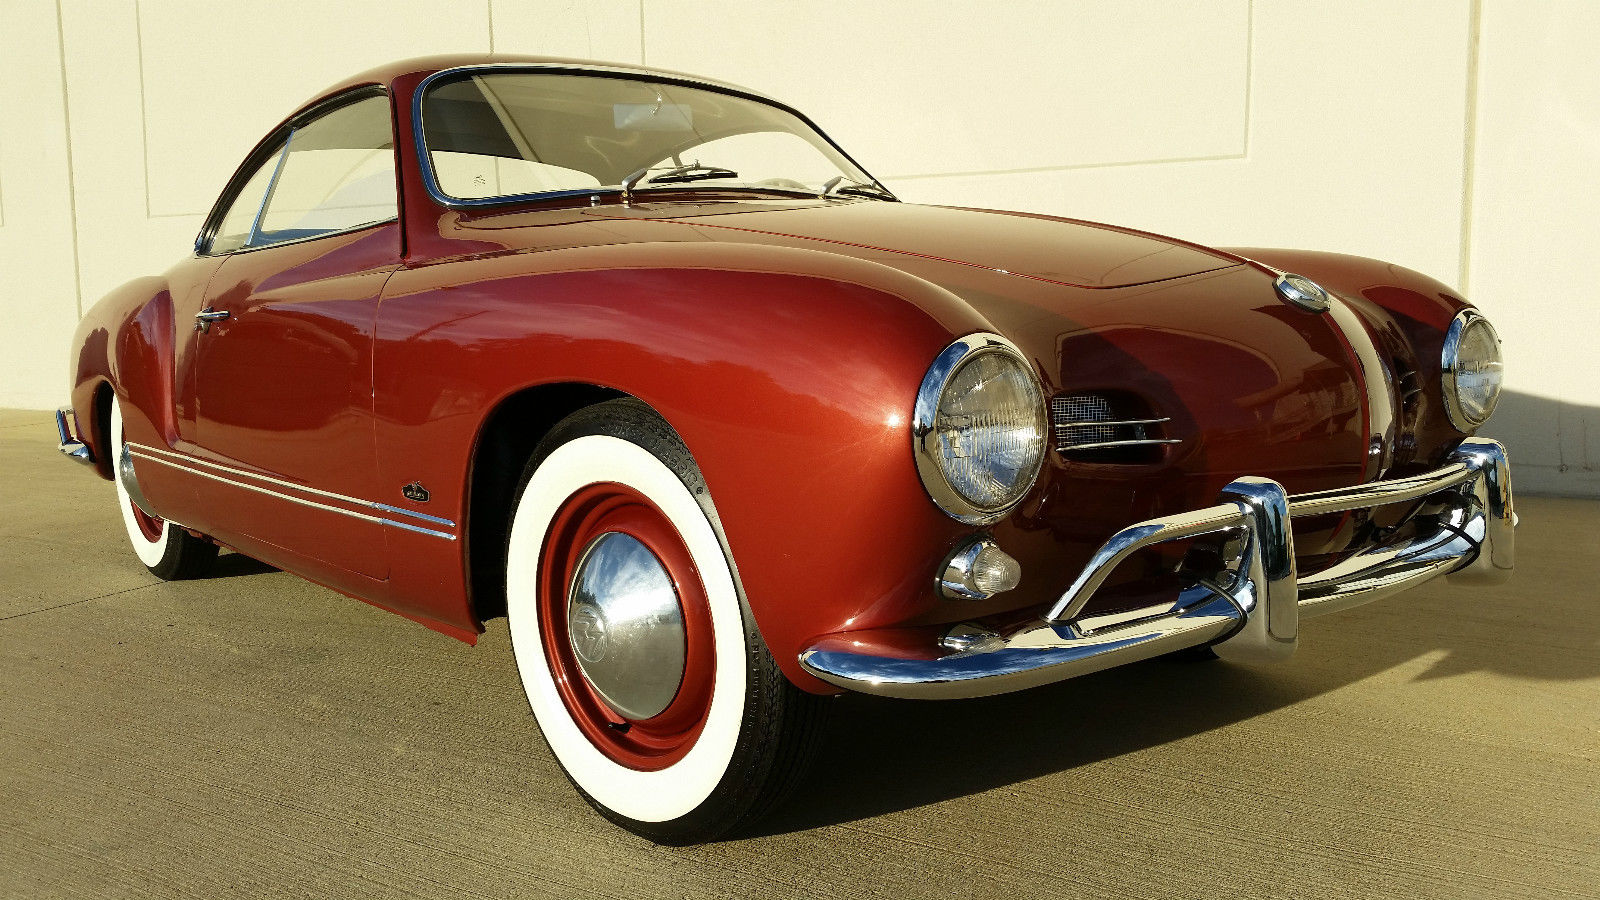 1959 VW KARMANN GHIA LOW LIGHT COUPE - VW BIRTH CERT ...